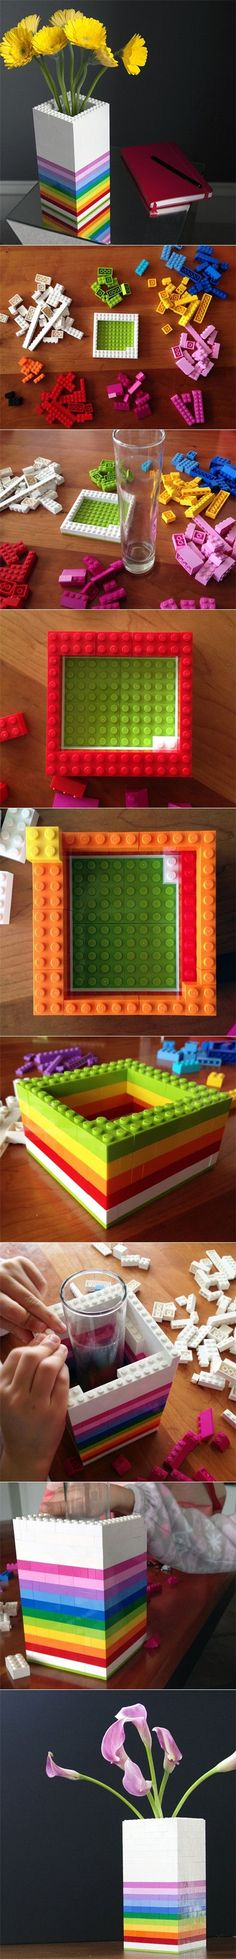 Crazy Simple LEGO Machines That Work // [http://theendearingdesigner.com/10-cool-lego-machine-constructions-that-you-never-imagined-possible/]